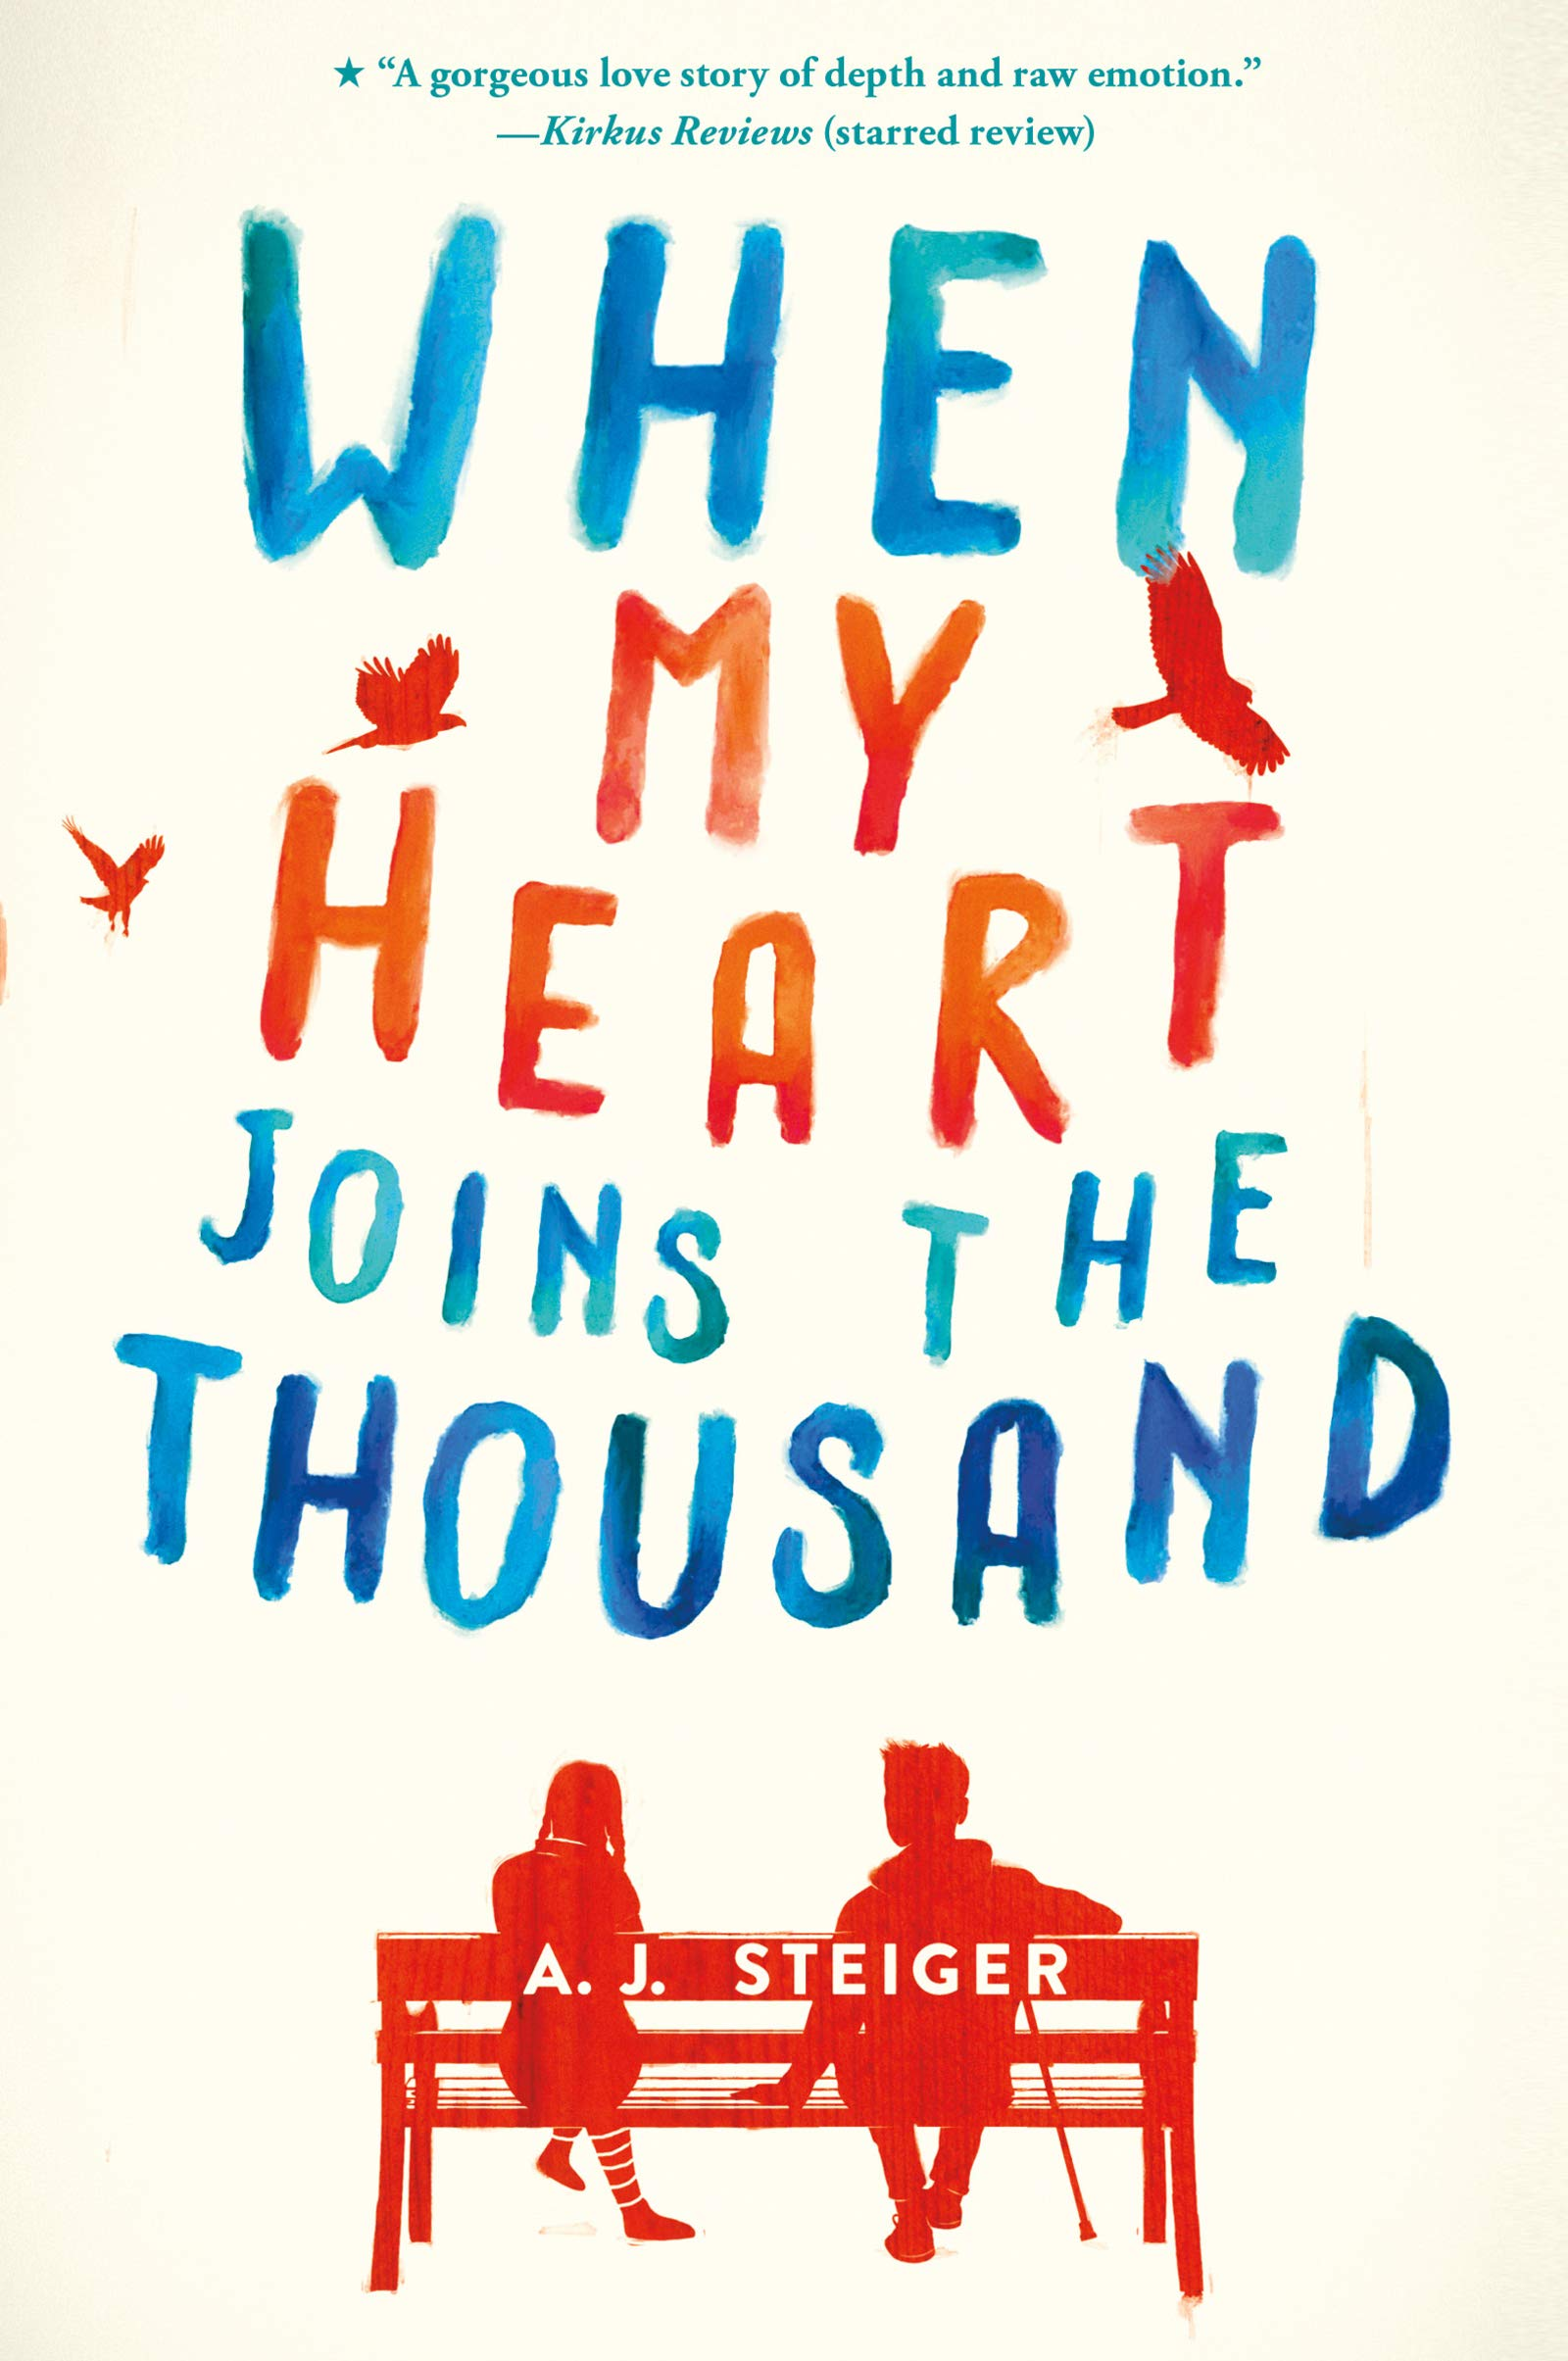 Amazon.com: When My Heart Joins the Thousand: 9780062656476: Steiger, A.  J.: Books